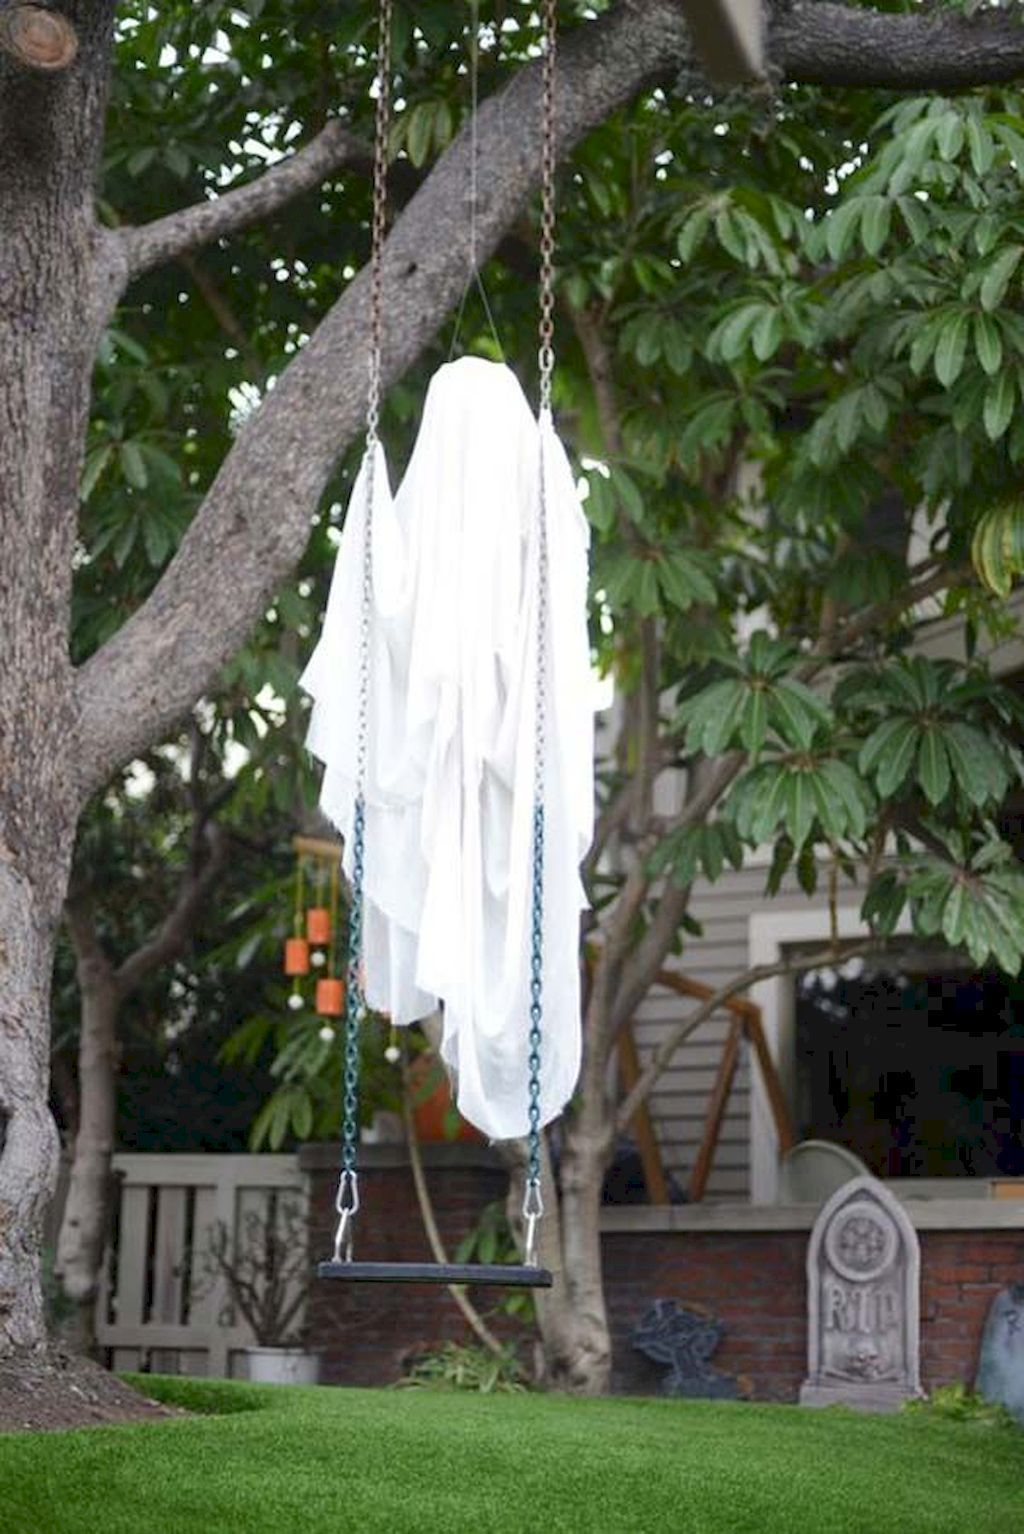 80 + CREEPY OUTDOOR HALLOWEEN DECORATION IDEAS (9 Halloween - Pinterest Outdoor Halloween Decorations